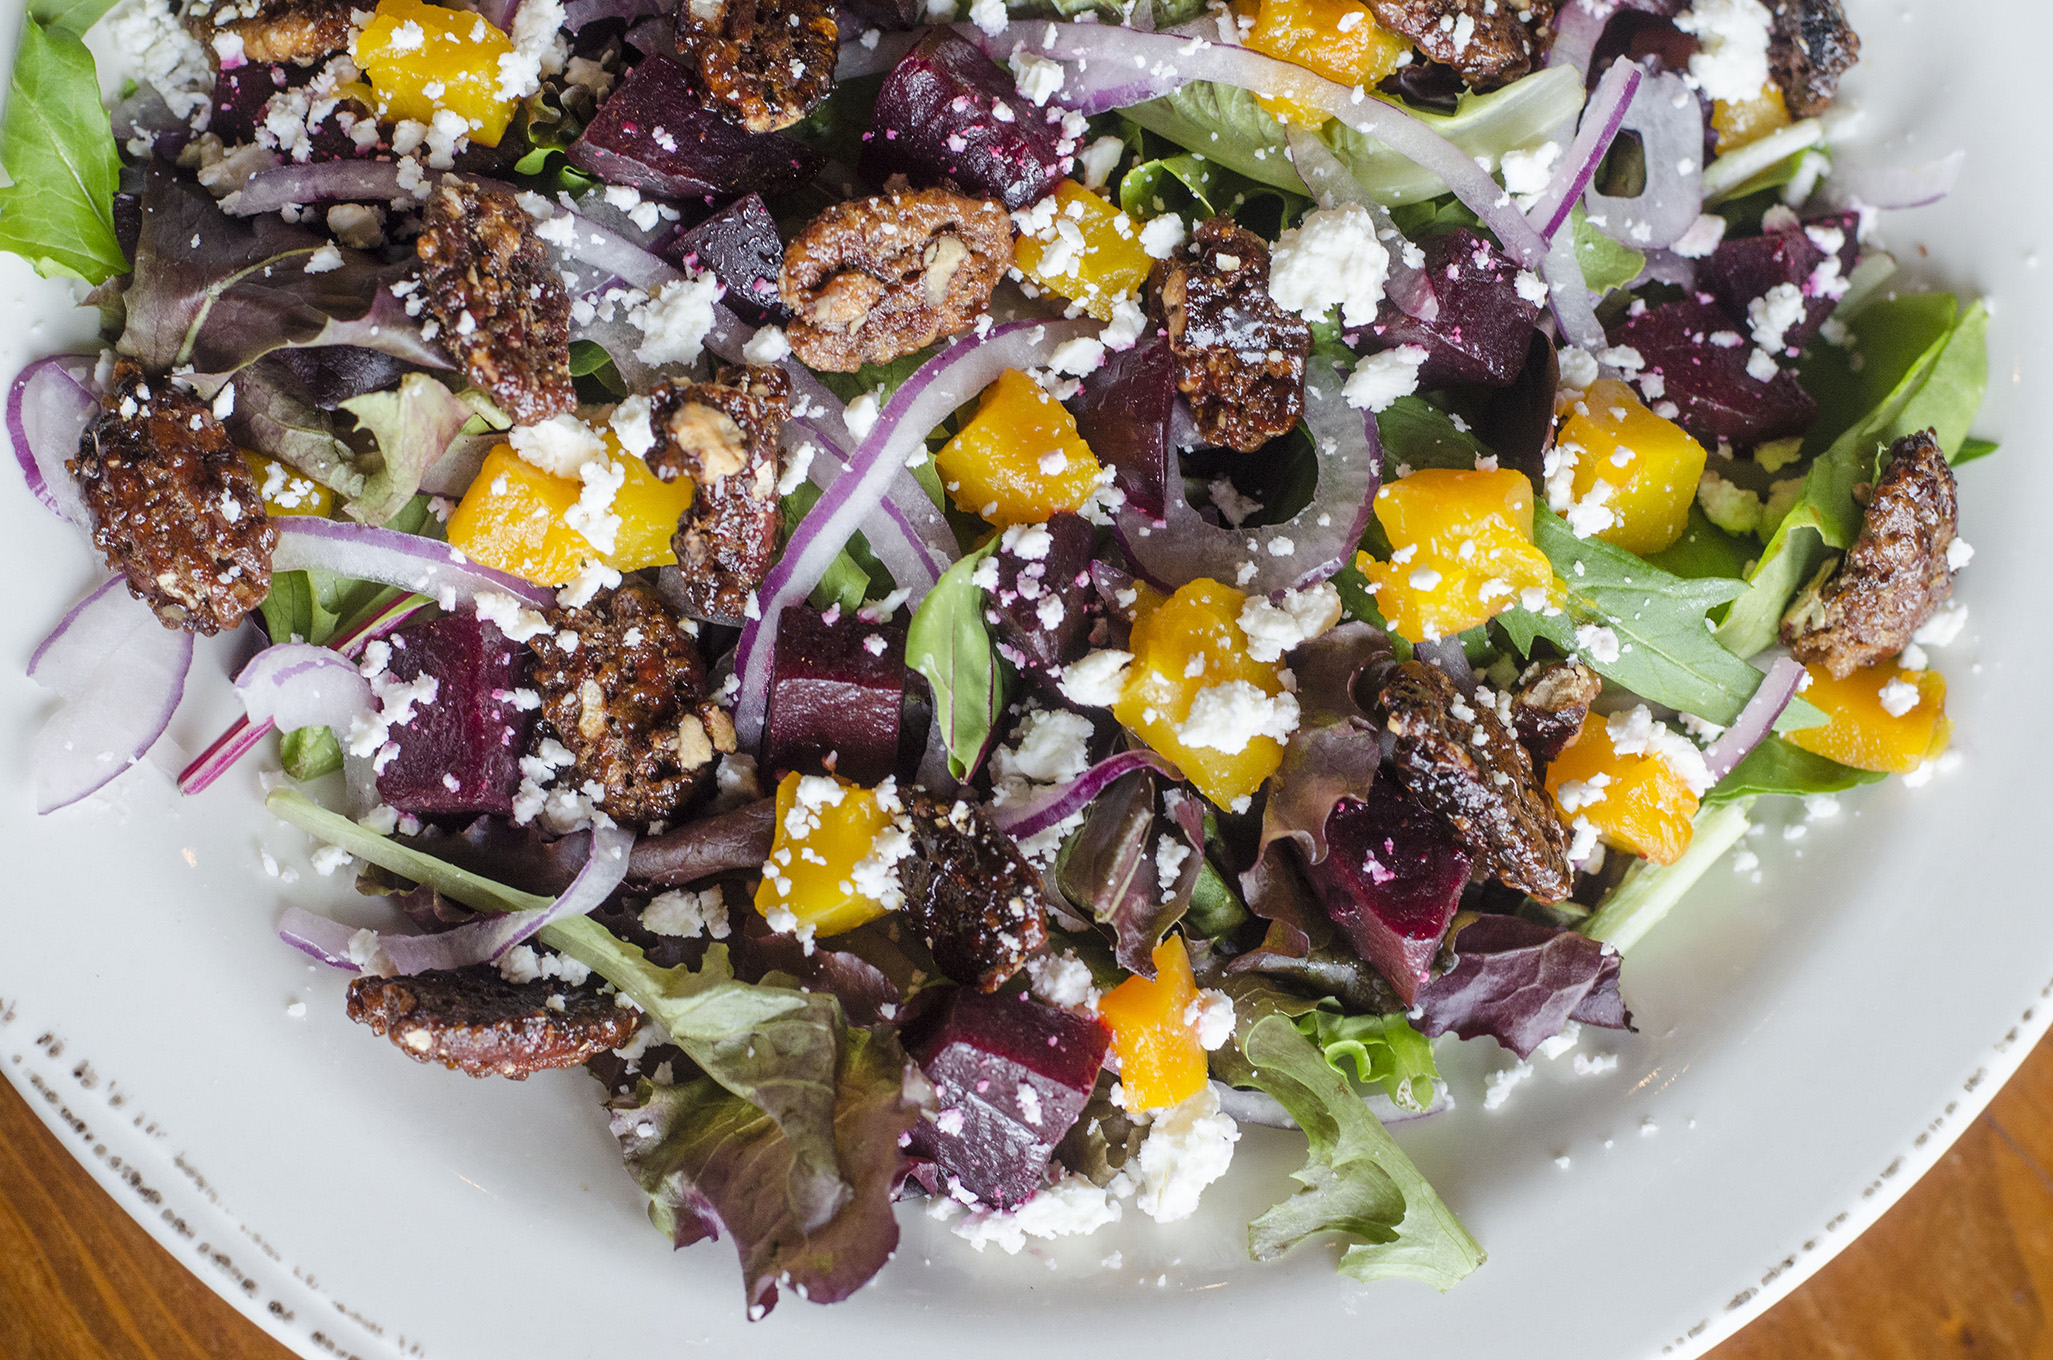 Autumn Salad from Billy's Taphouse